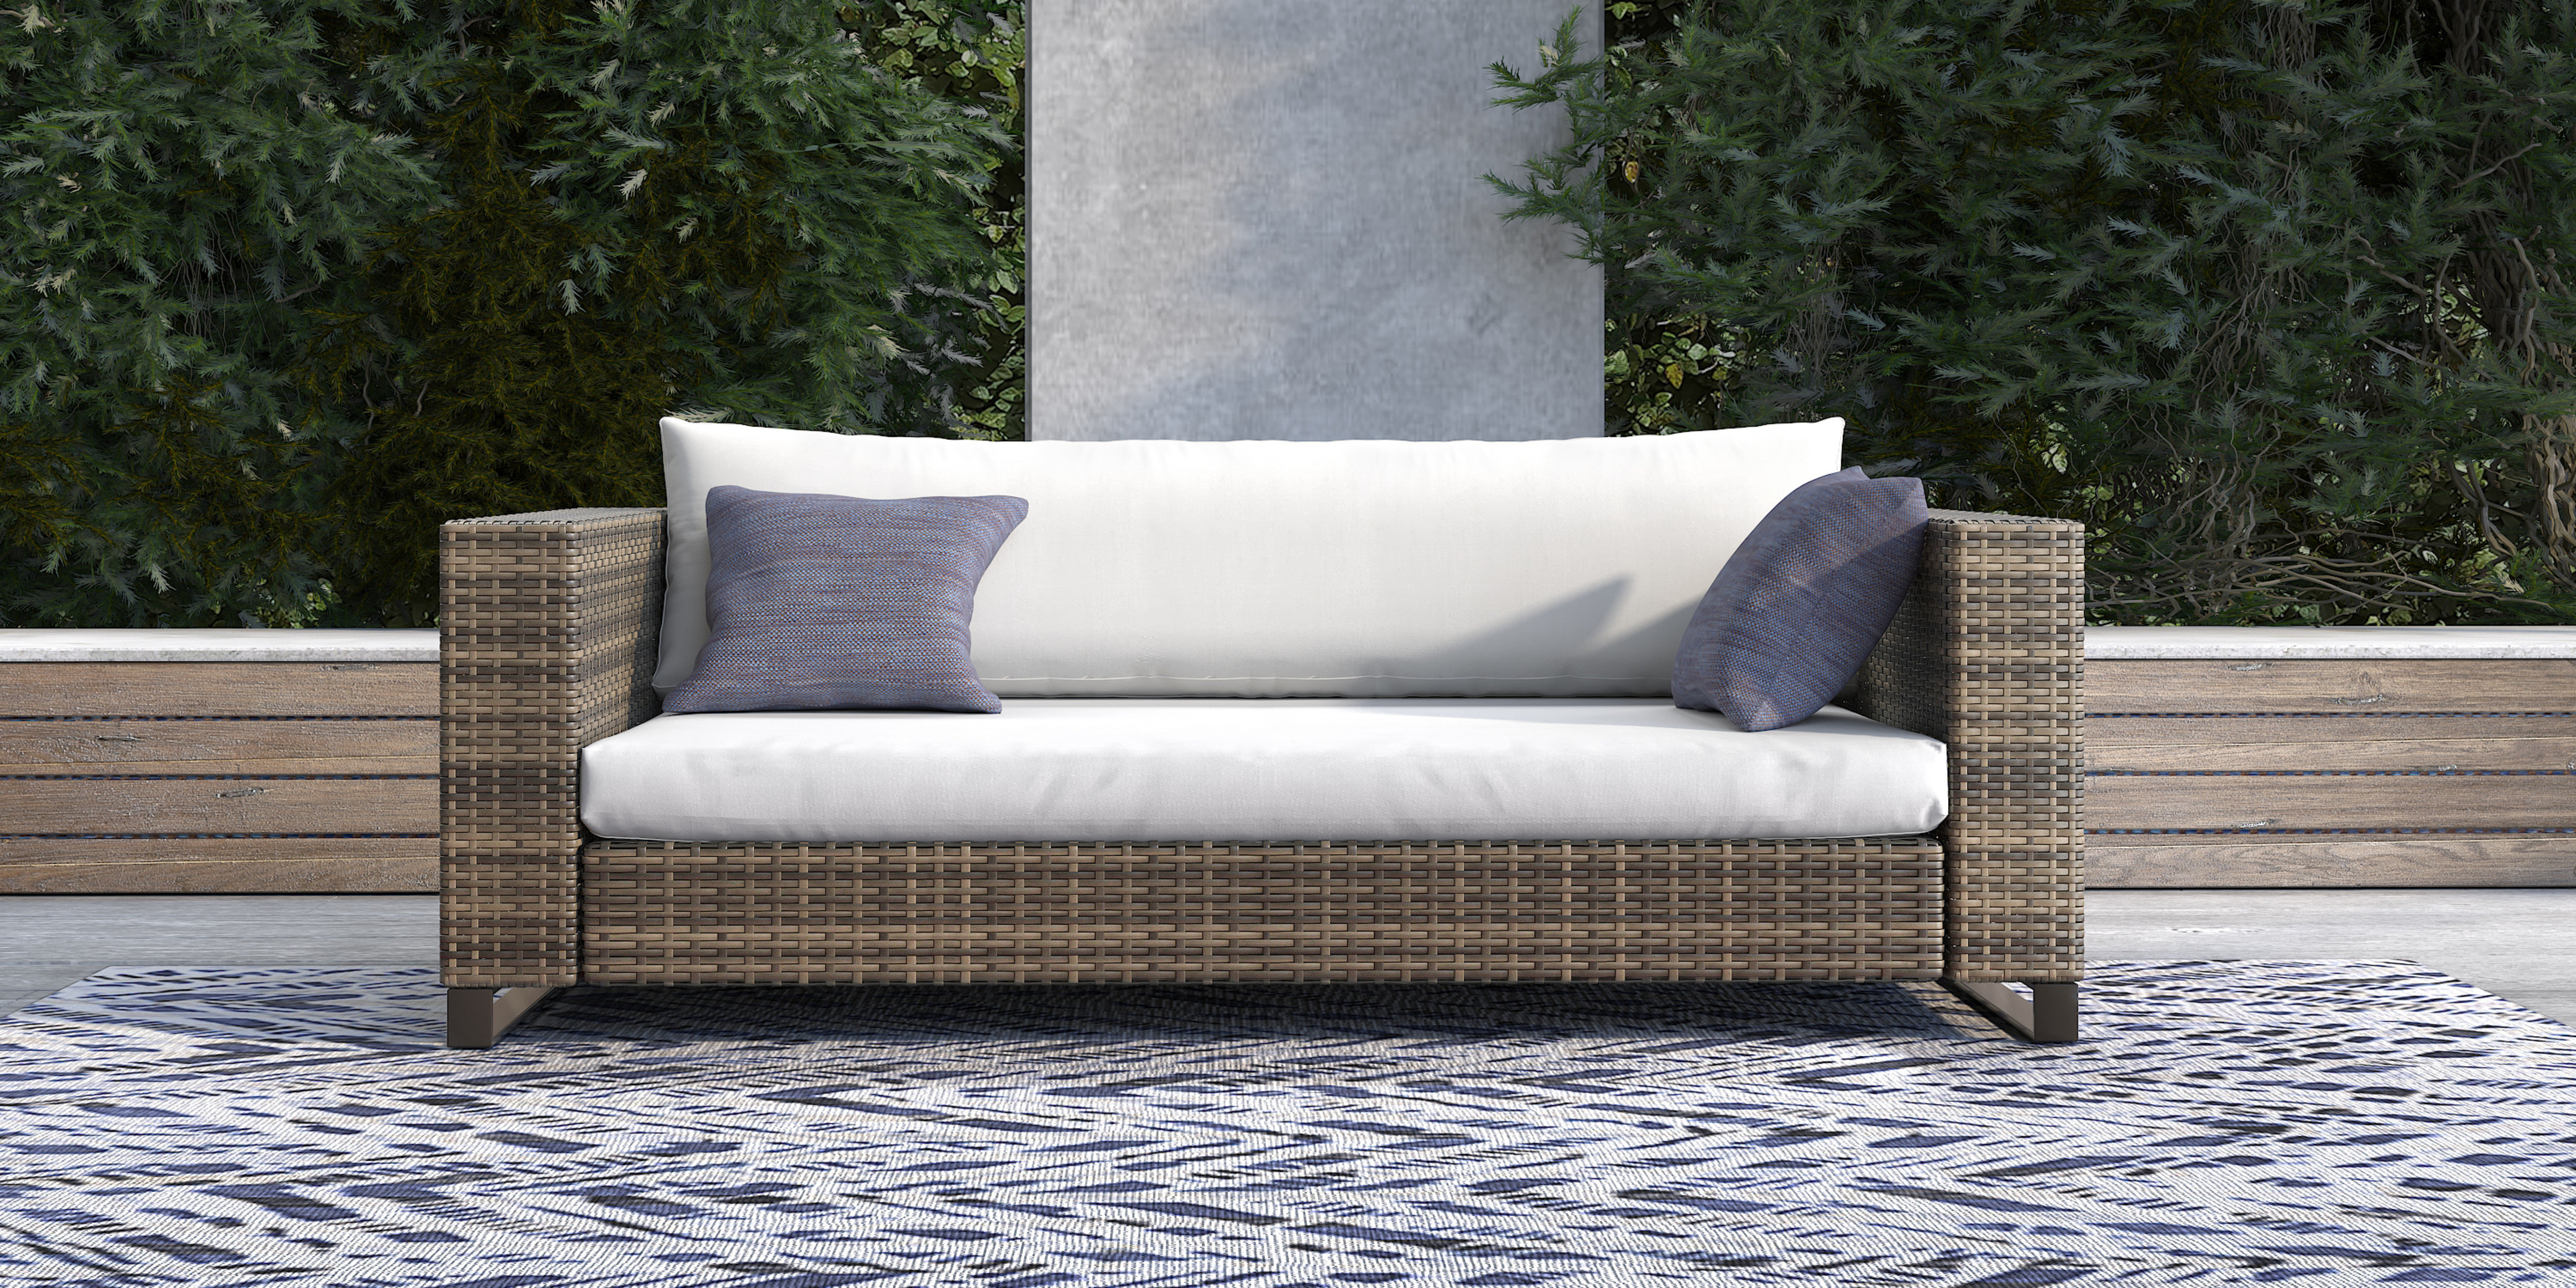 Oceanside Outdoor Wicker Loveseat With Cushions For Most Current Newbury Patio Sofas With Cushions (Gallery 9 of 20)